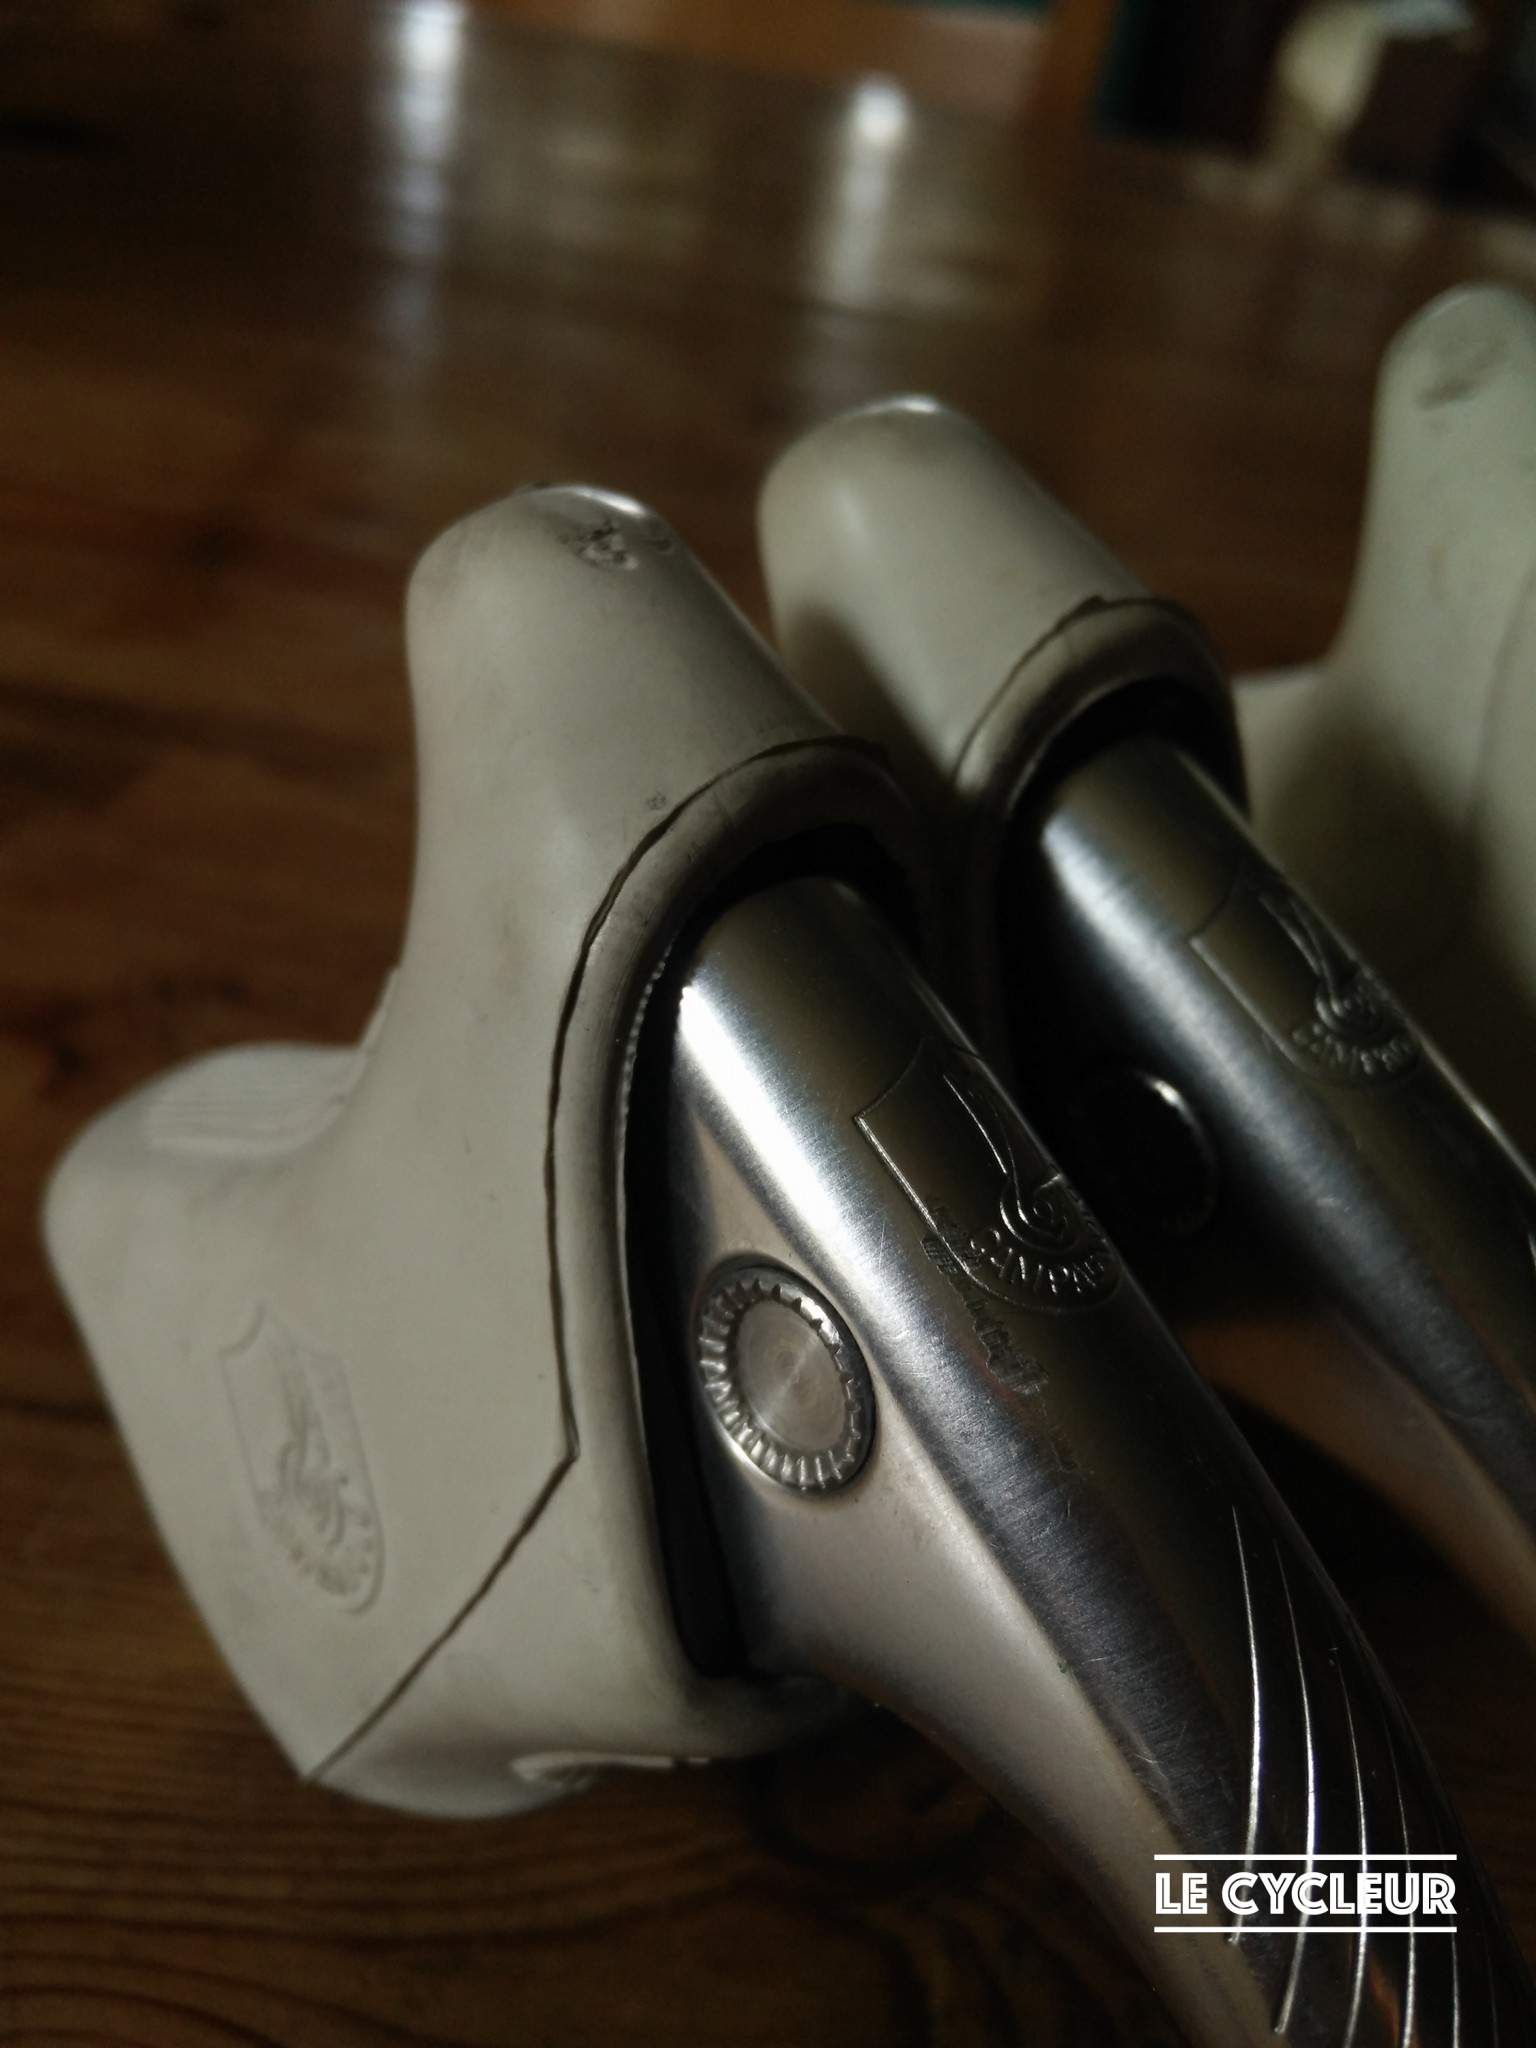 first gen Campagnolo C-Record brake levers